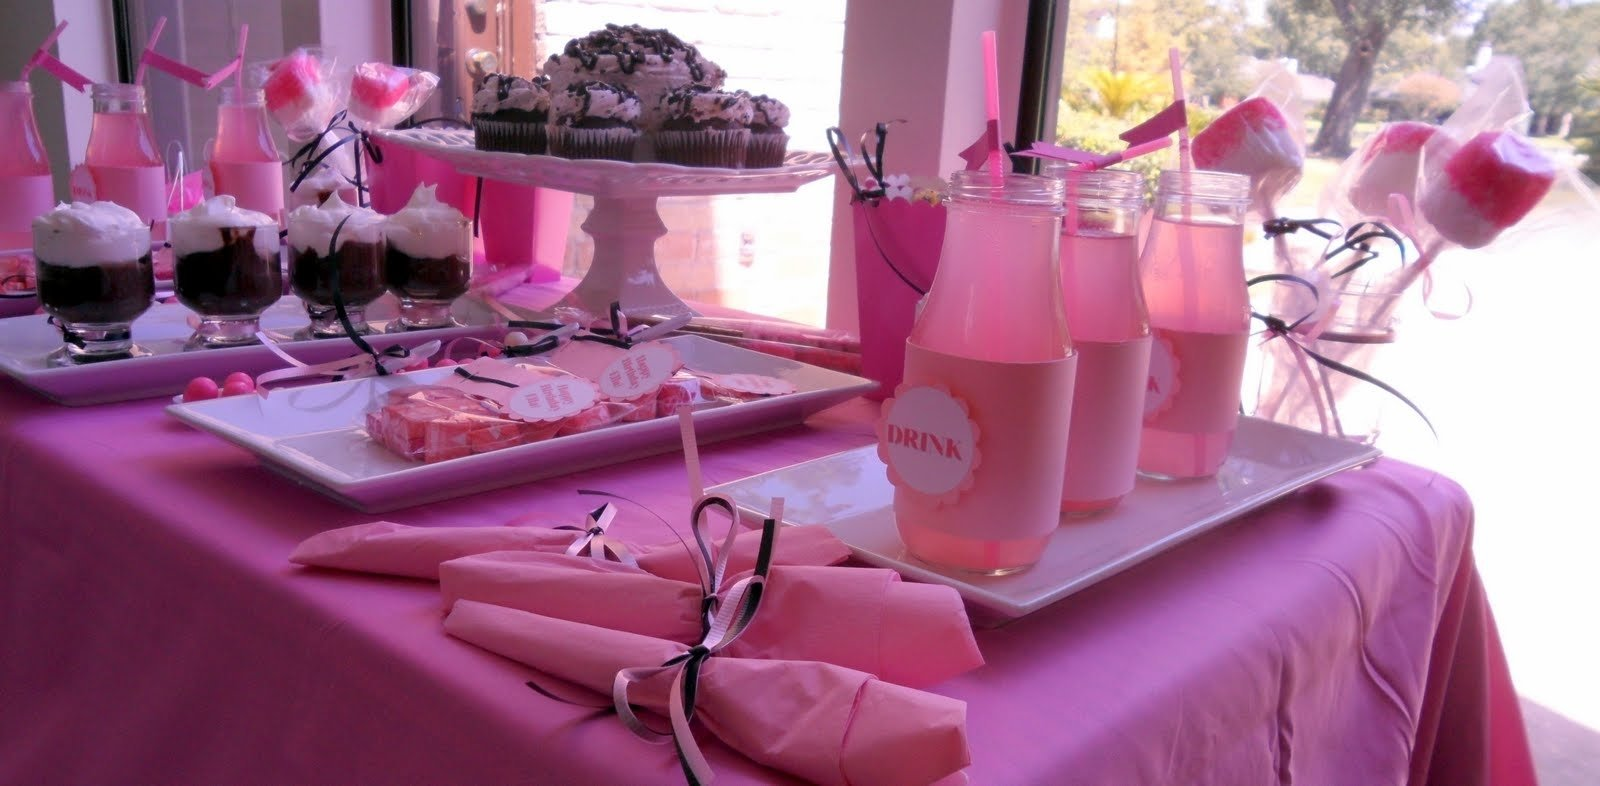 10 Great Birthday Party Ideas For Girls Age 6 glamour avenue parties the blog glamorous barbie inspired spa